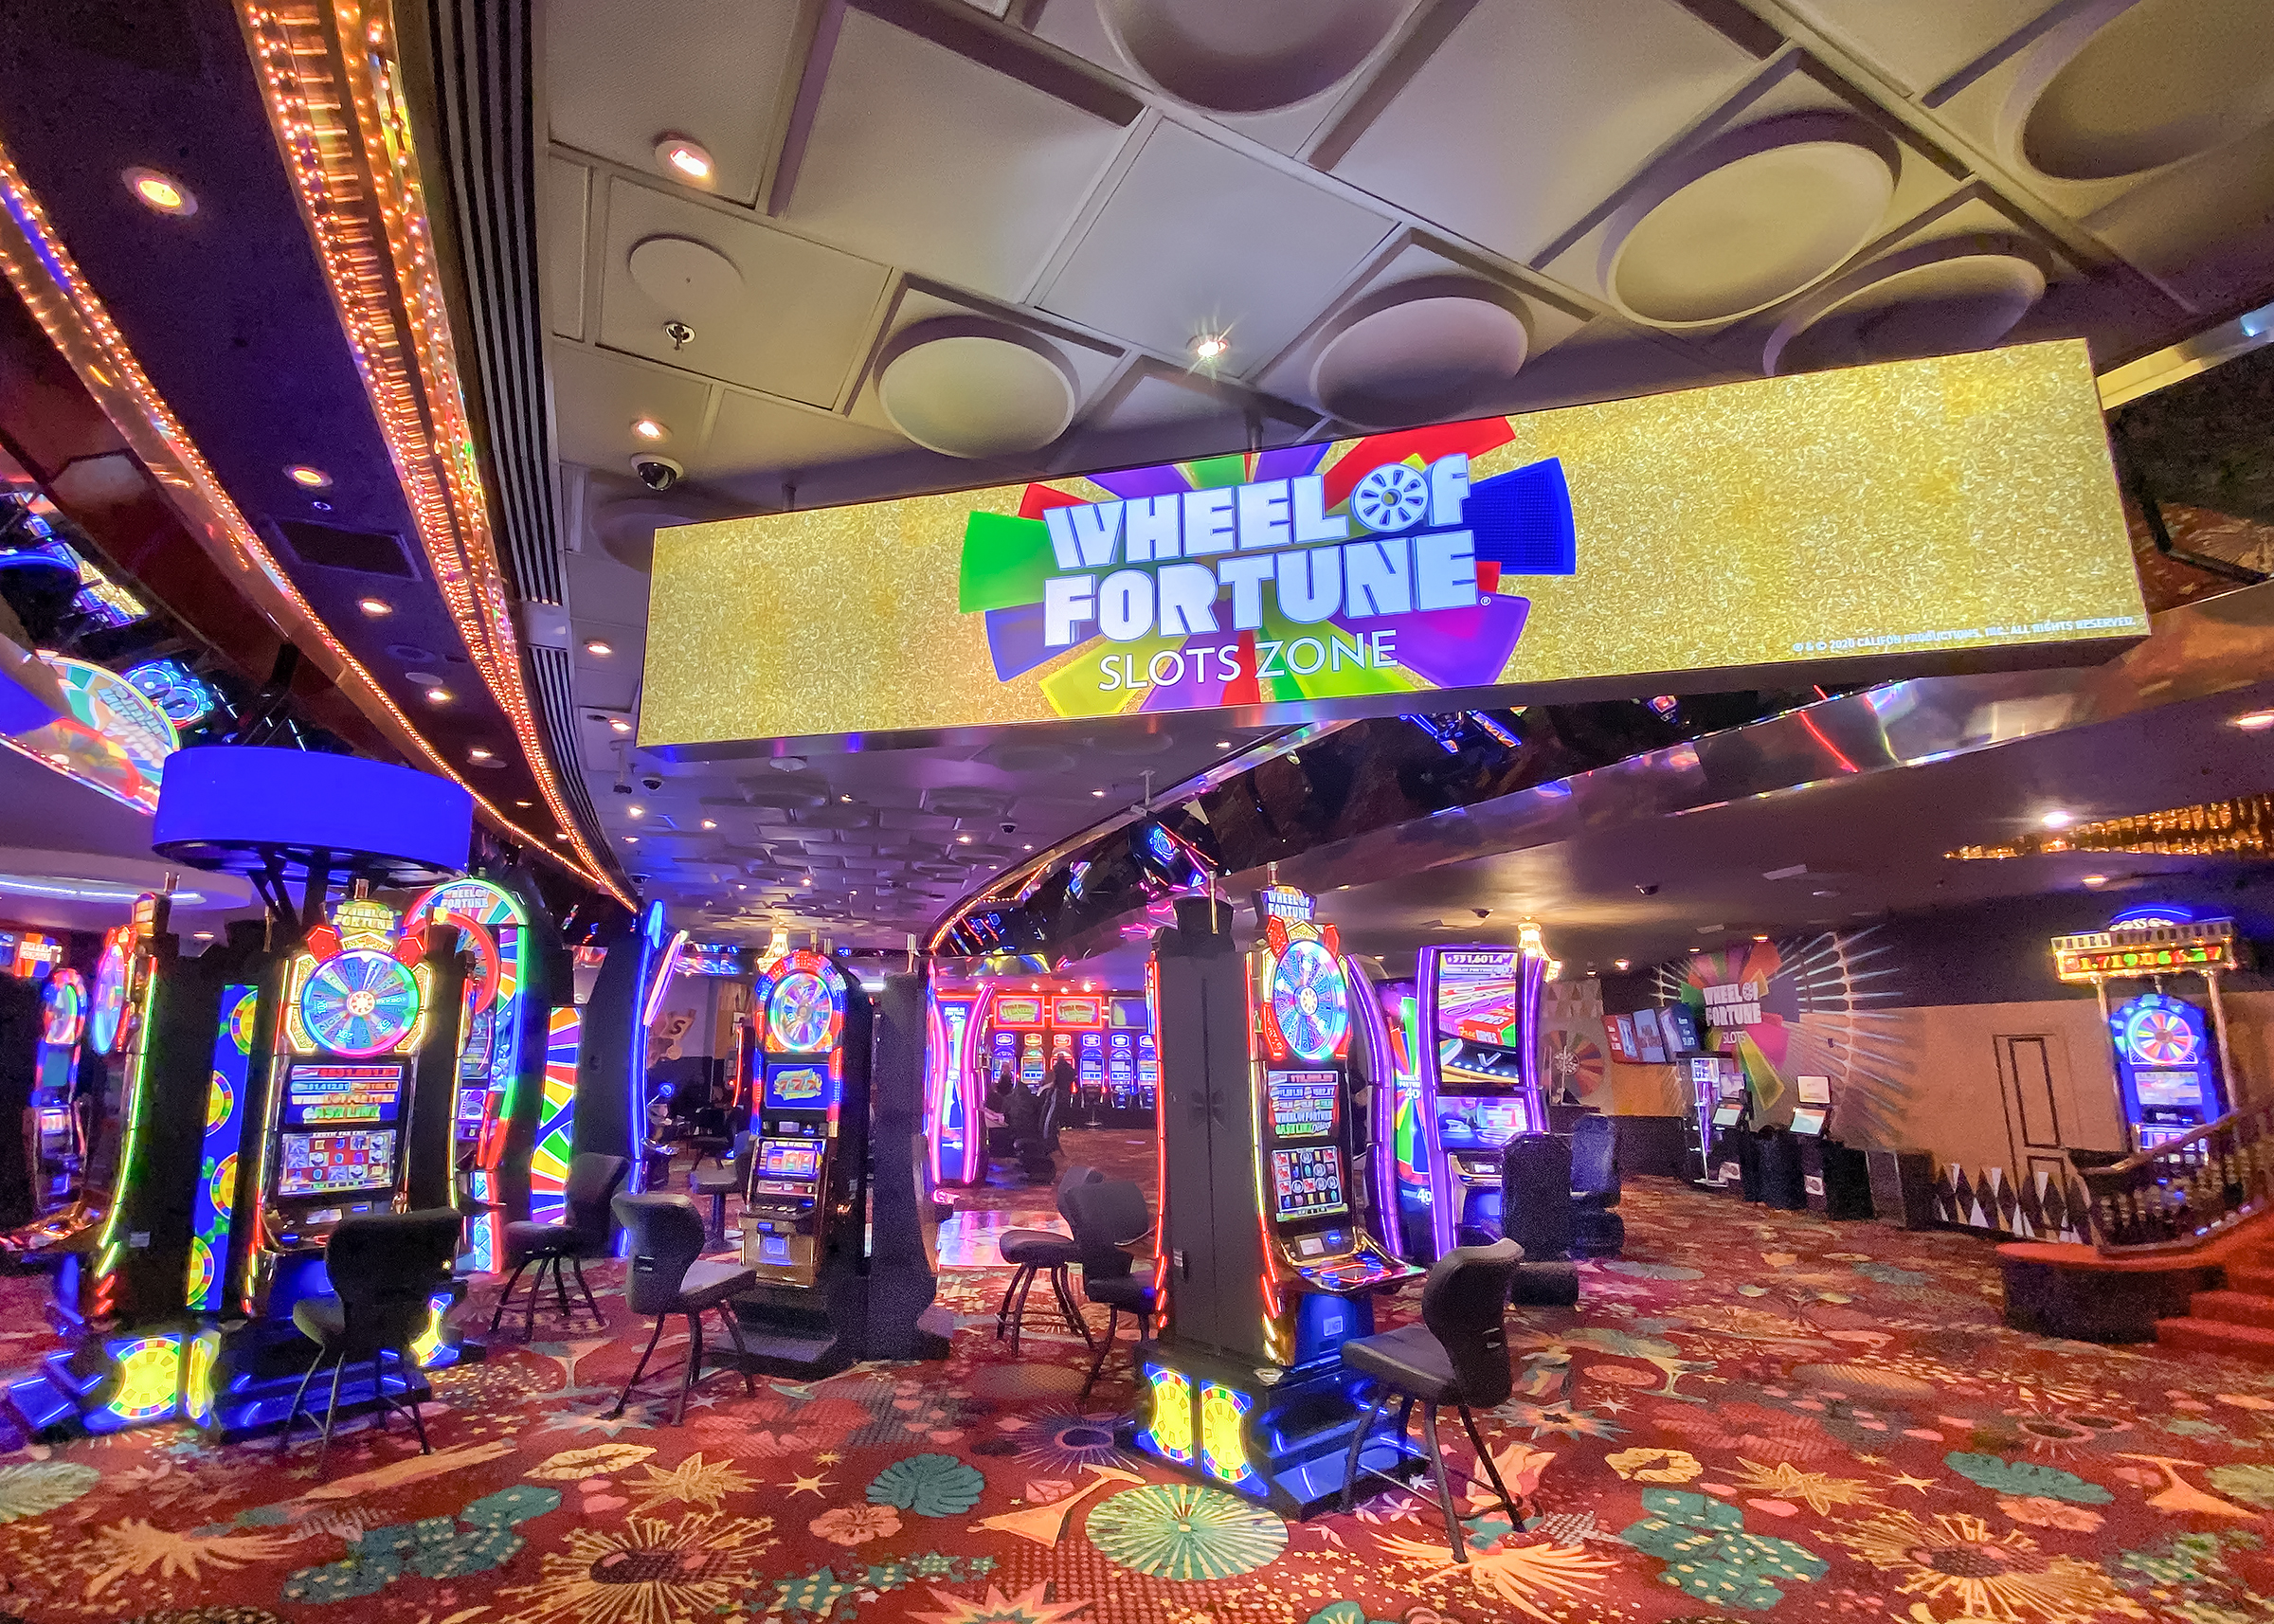 igt-and-the-plaza-hotel-&-casino-celebrate-life-changing-jackpots-with-las-vegas'-exclusive-wheel-of-fortune-slots-zone